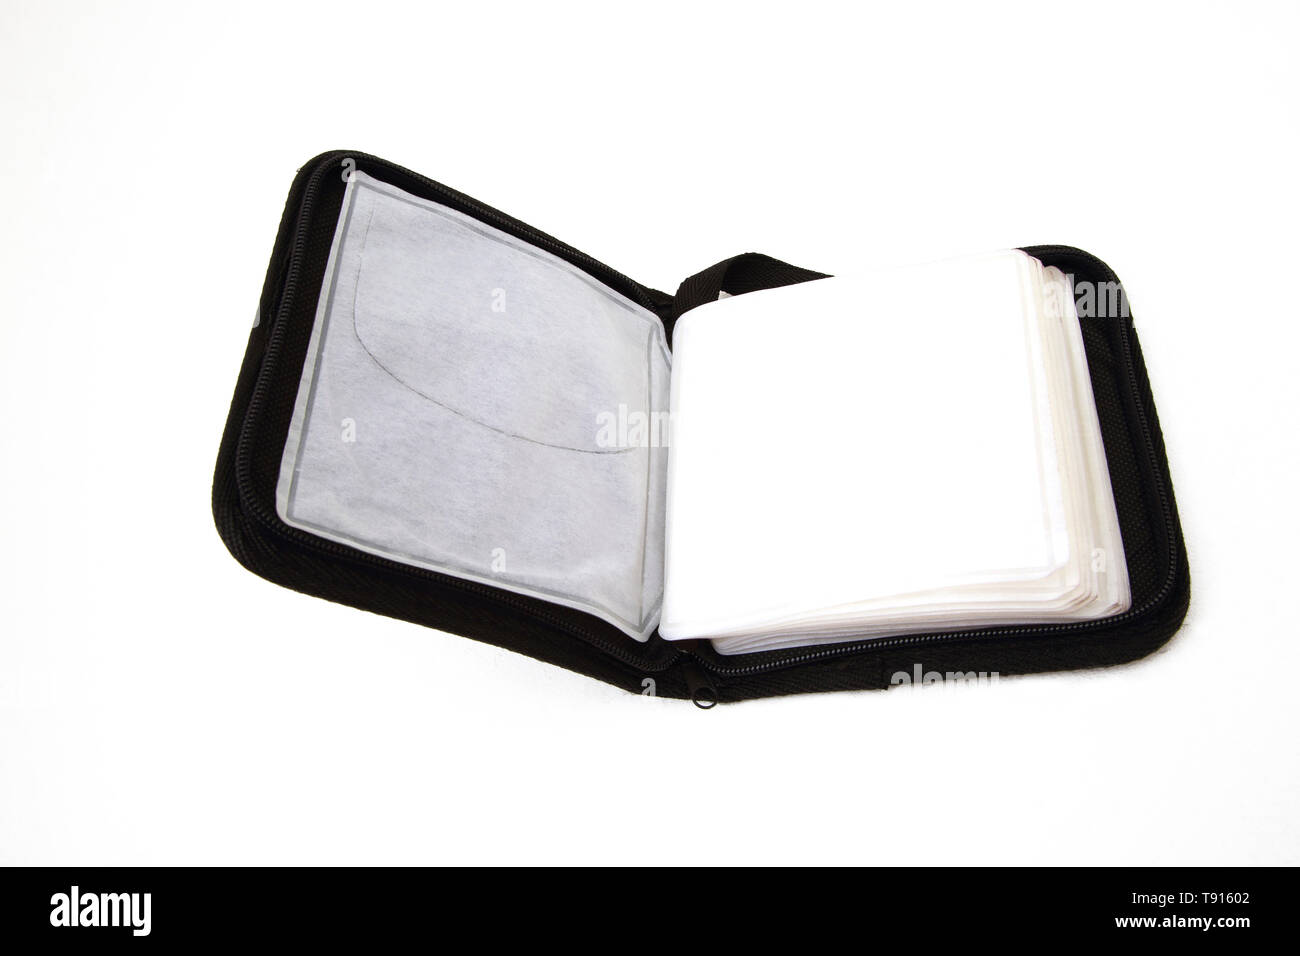 A Compact disc Case - Stock Image